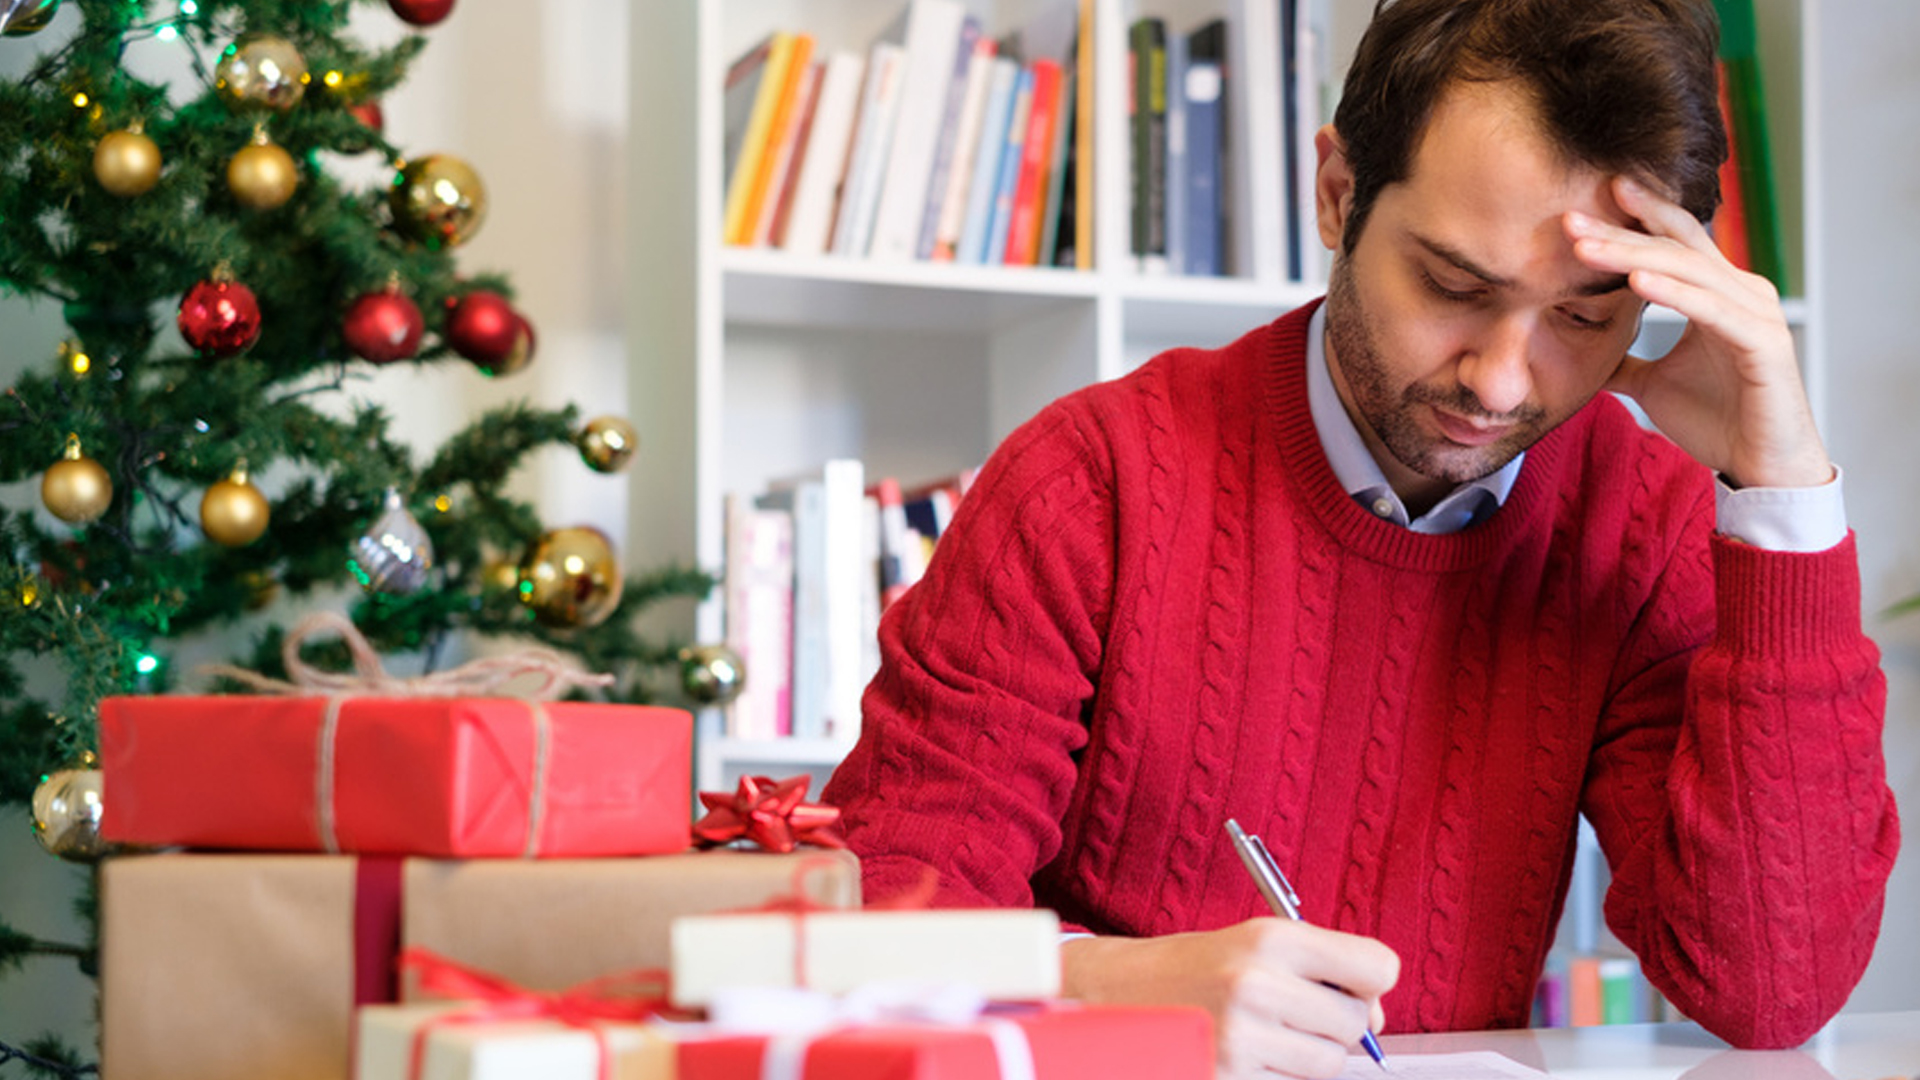 5 HOUSEHOLD EXPENSES THAT INCREASE OVER THE HOLIDAYS